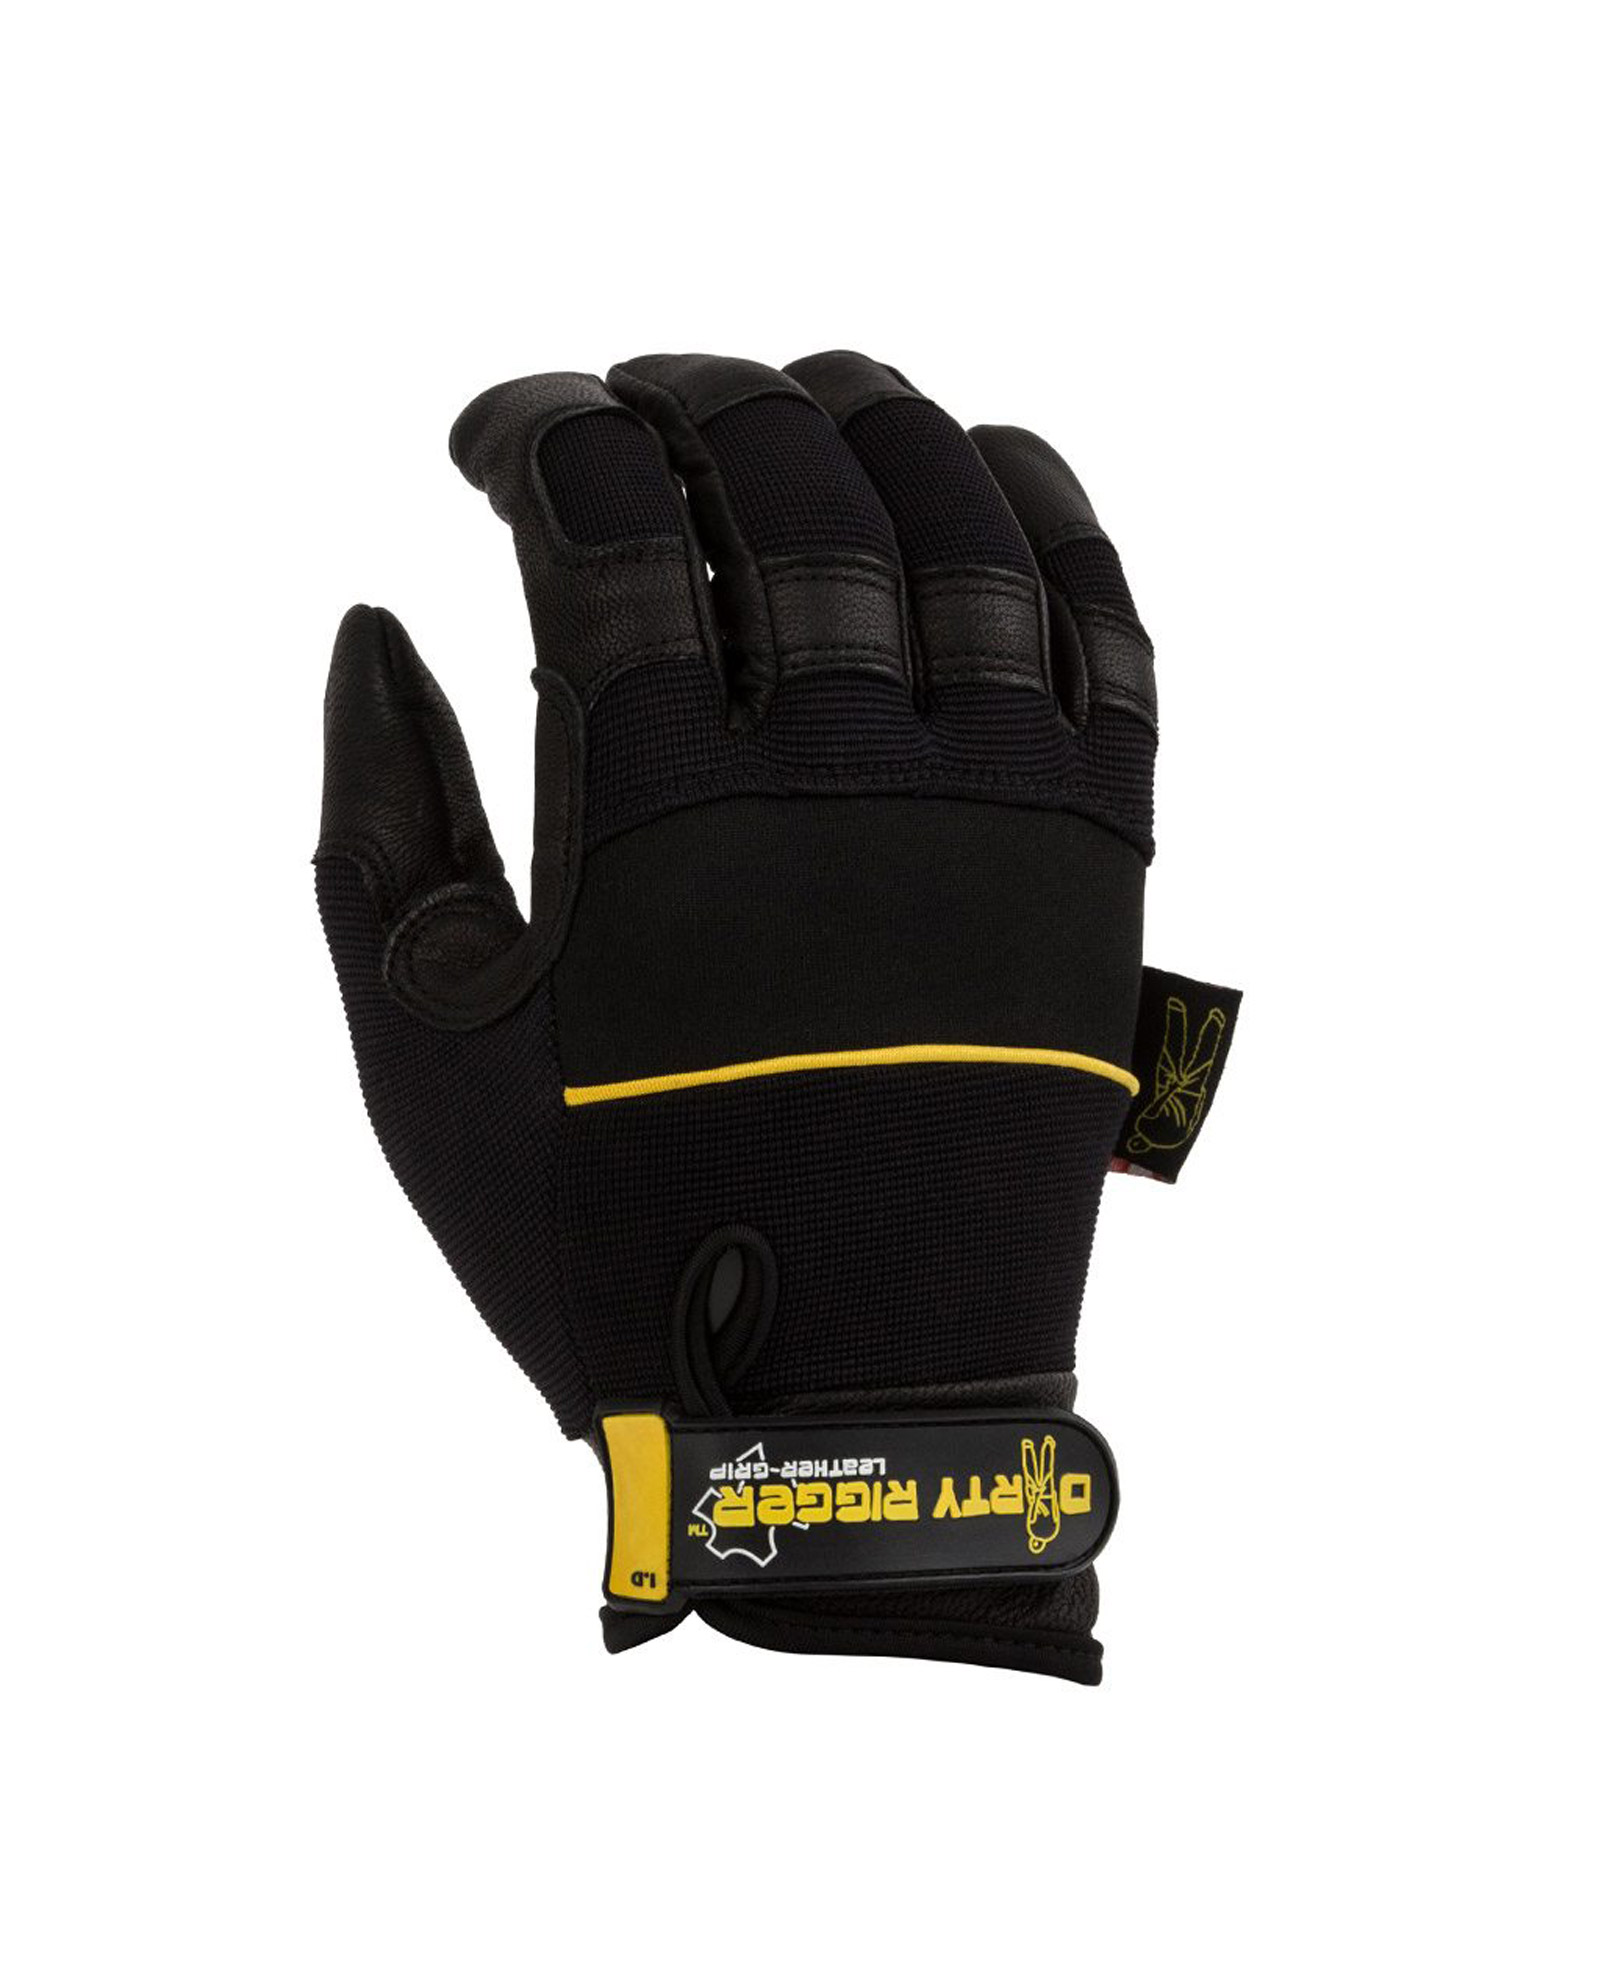 Dirty Rigger Glove Dty Lgrip Leather Grip Full Handed Glove